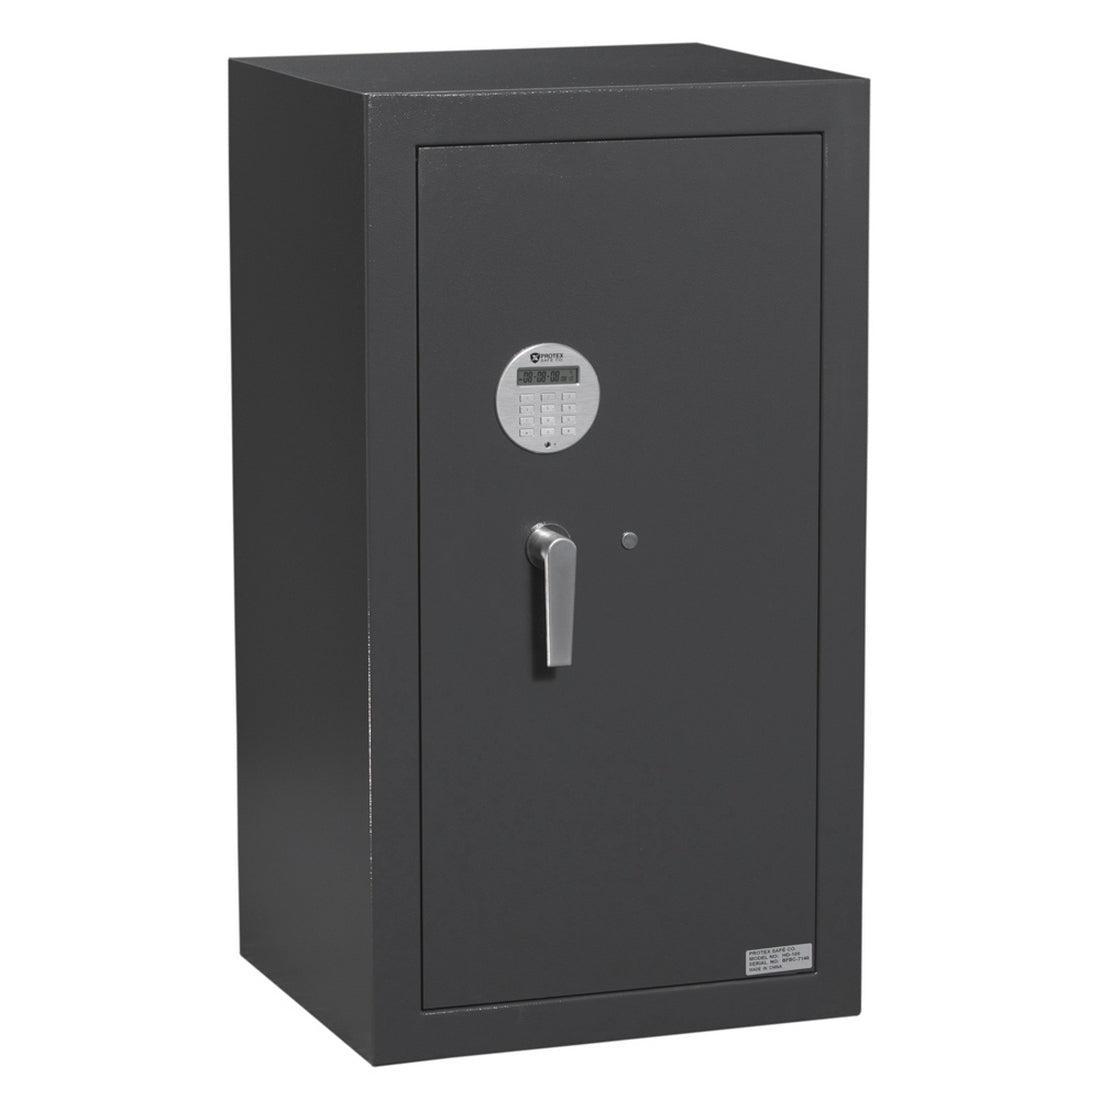 Protex Safe HD-100 Large Burglary Safe